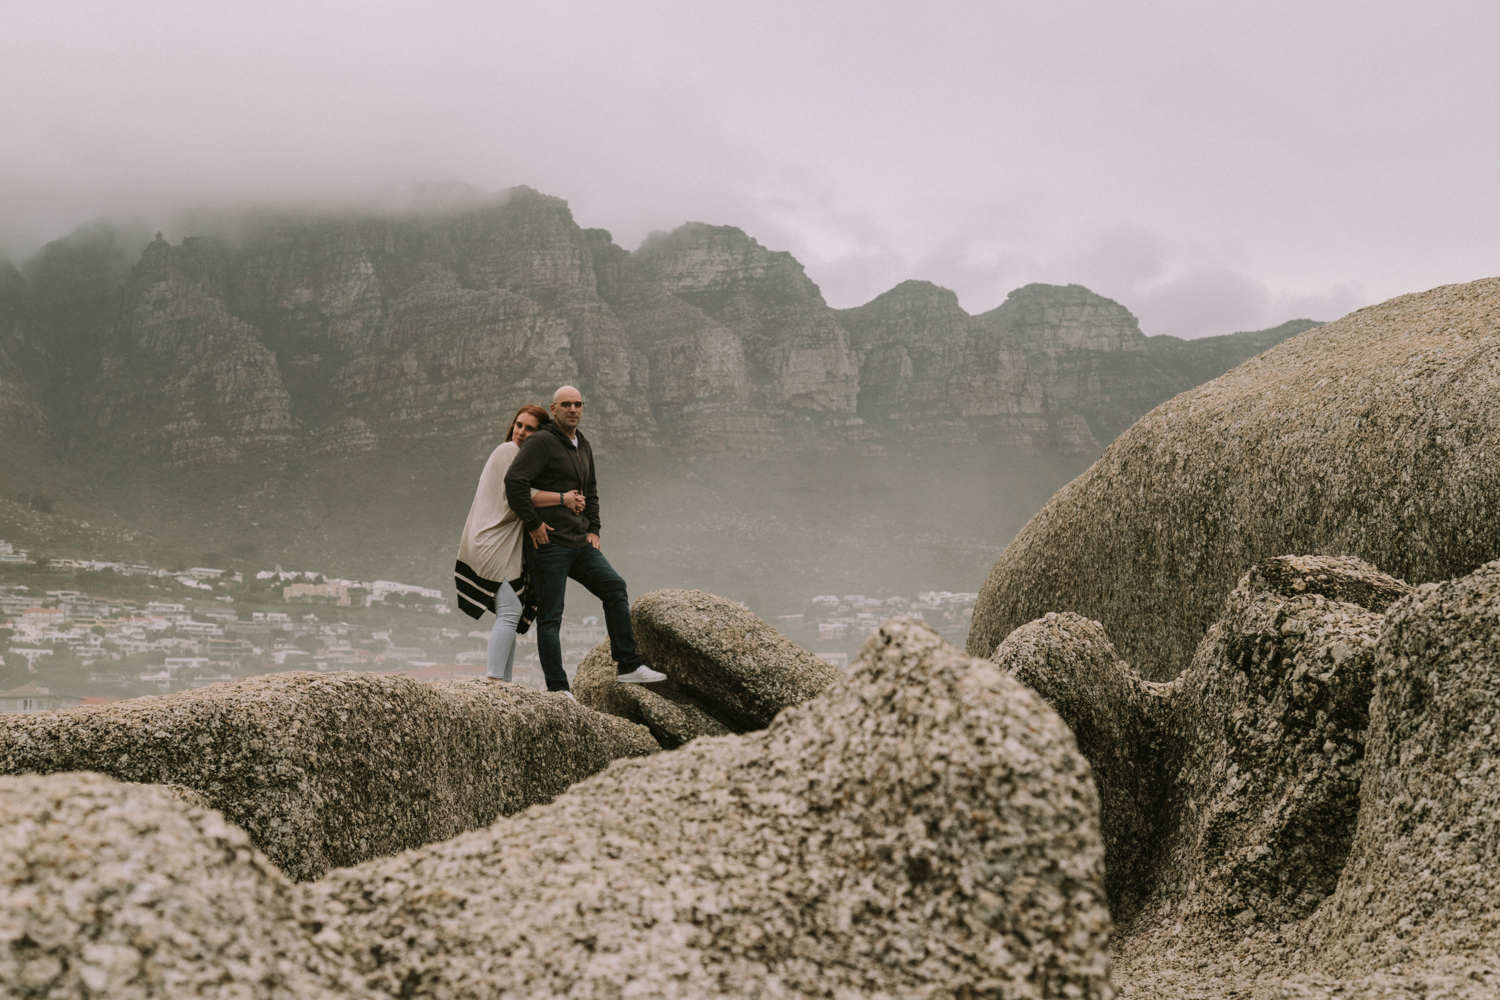 Enagagement photography Cape Town- Bianca Asher Photography-23.jpg